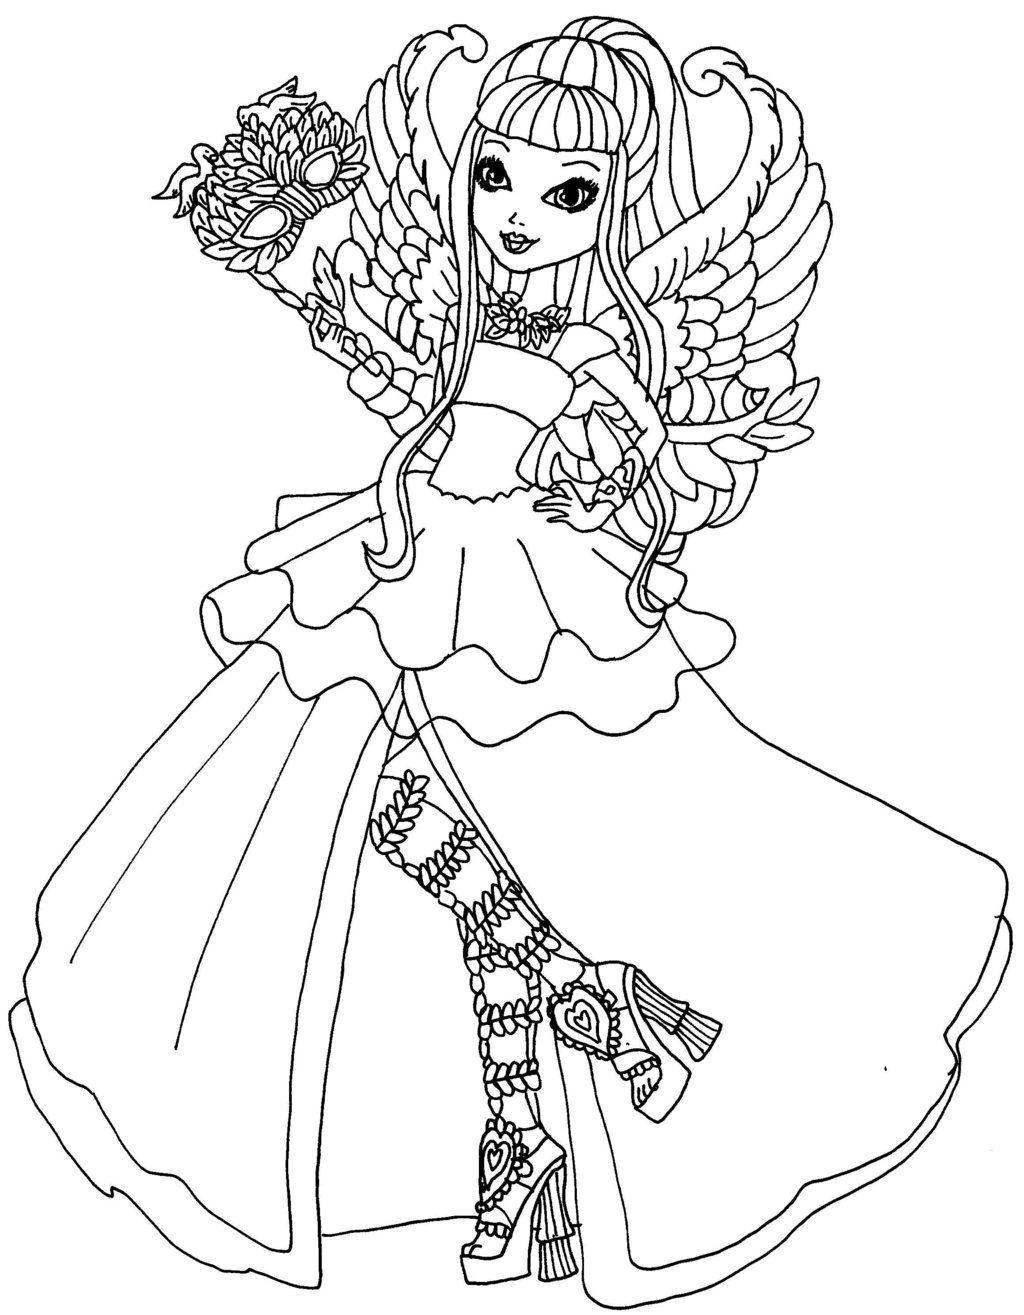 Monster High Haunted Rochelle Poppy Coloring Page Ca Cupid Thronecoming By Elfkena